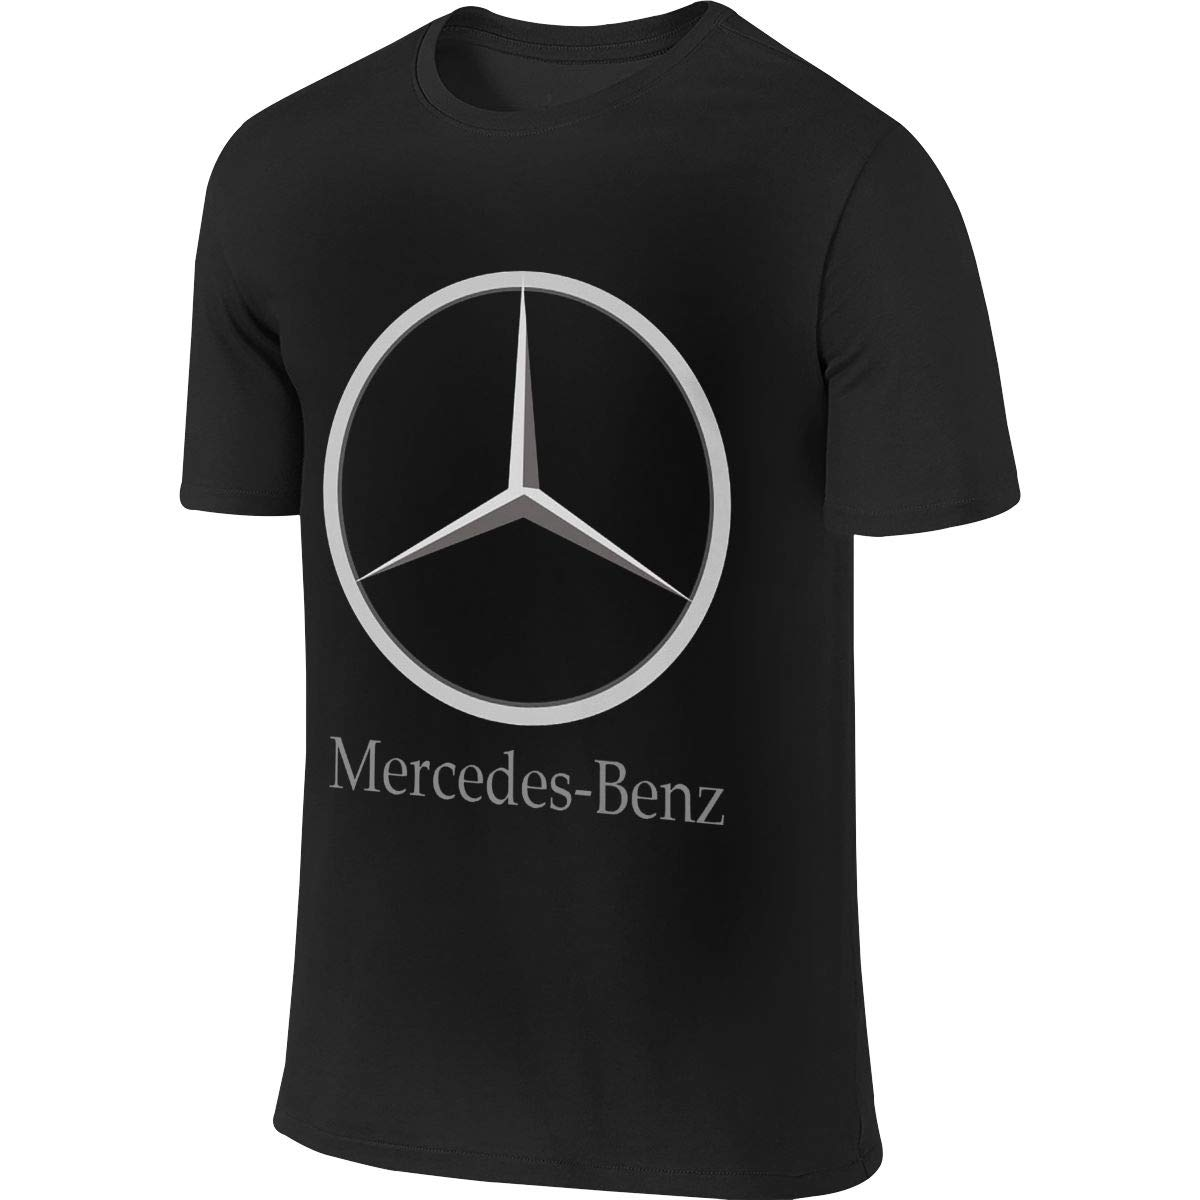 BYSKA Man Personalized Funny Tops Mercedes Benz Logo Tshirt